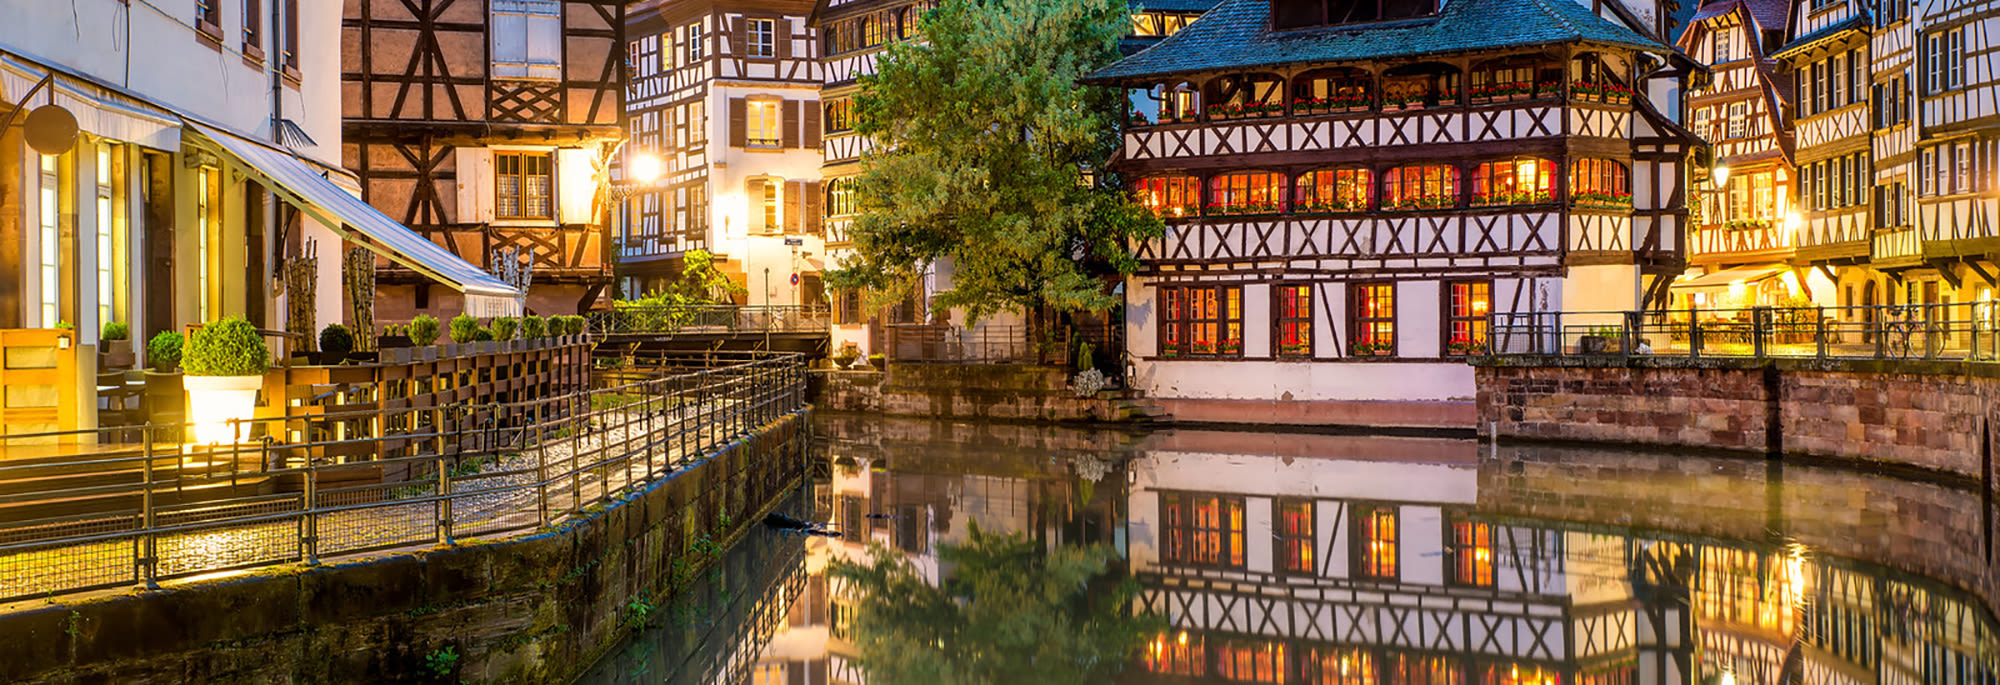 strasbourg by the water